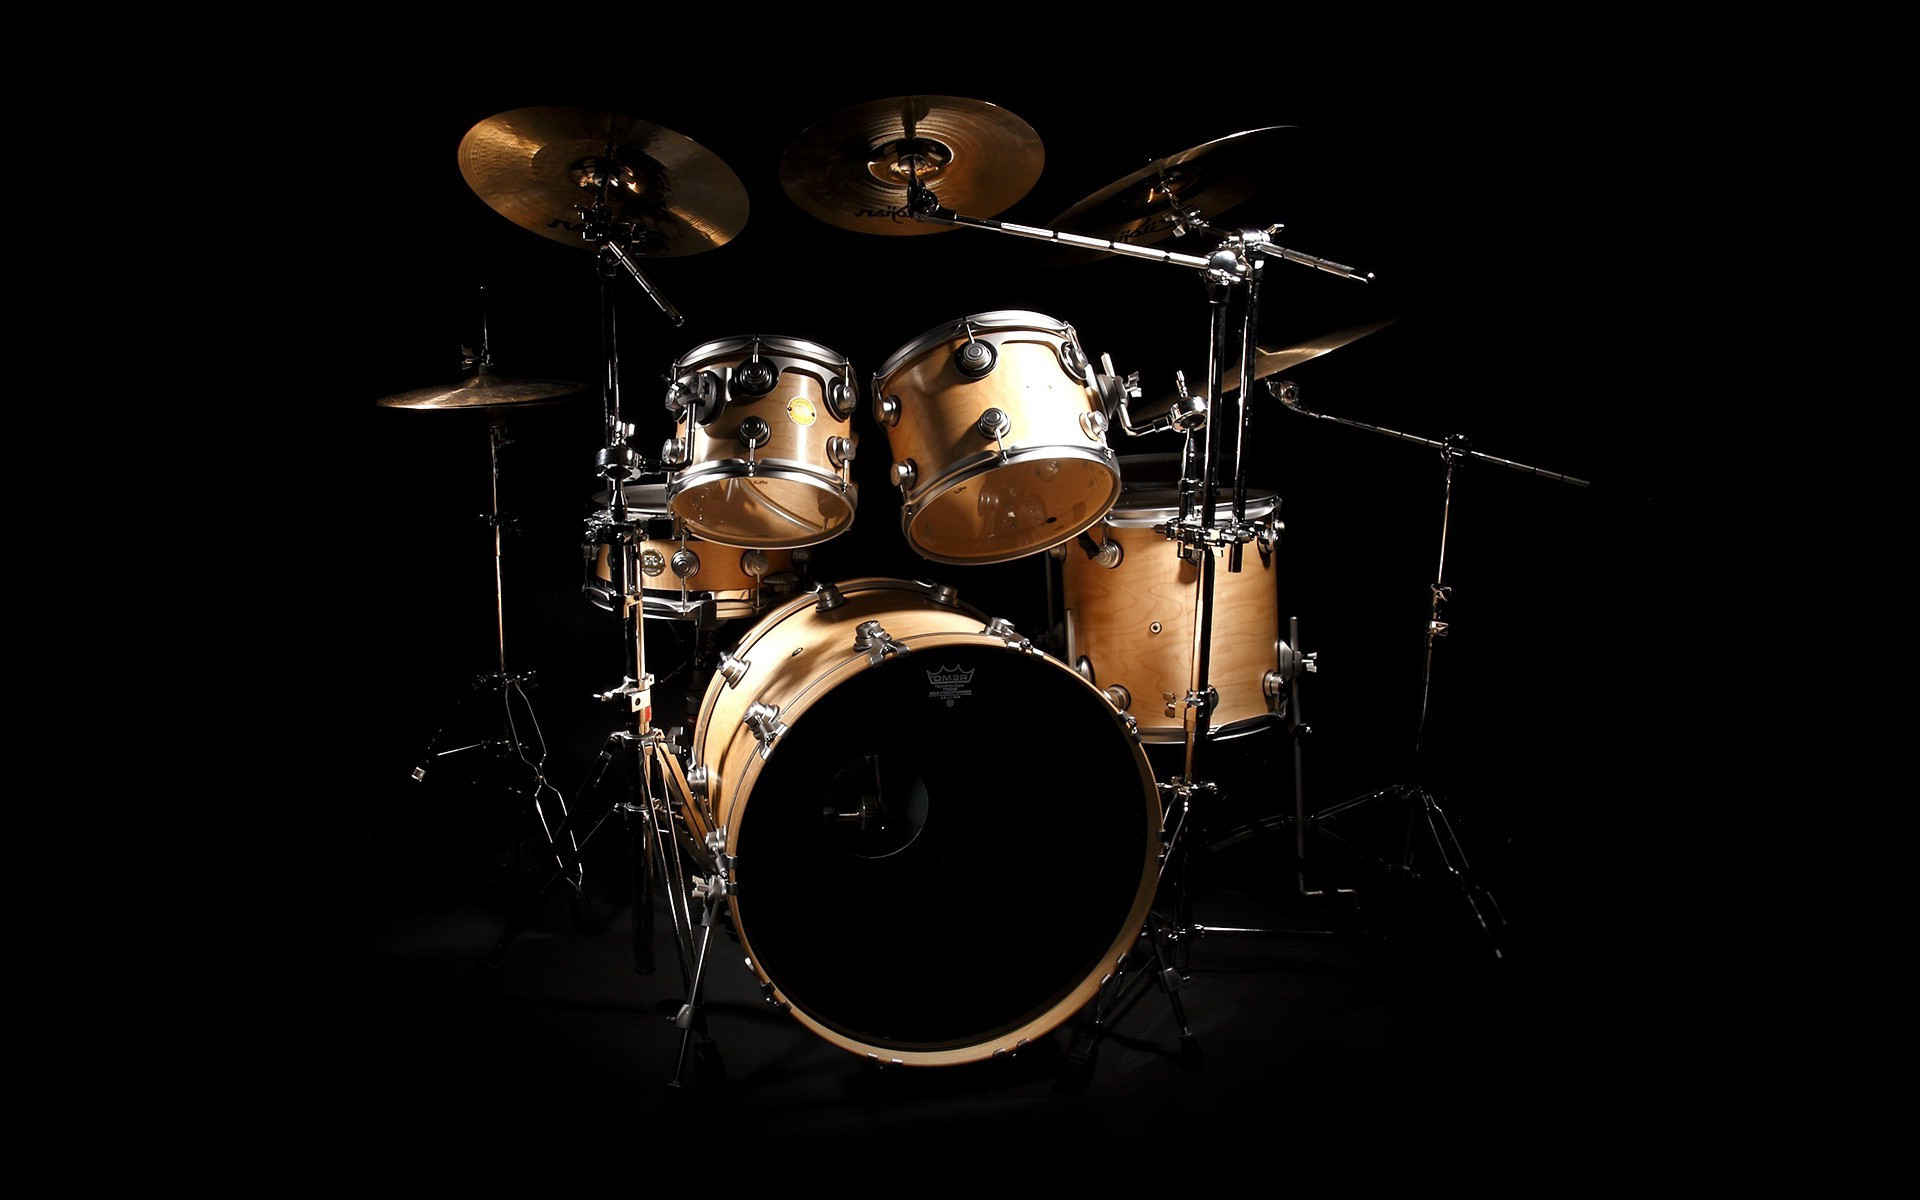 1920x1200 4K Drums wallpapers